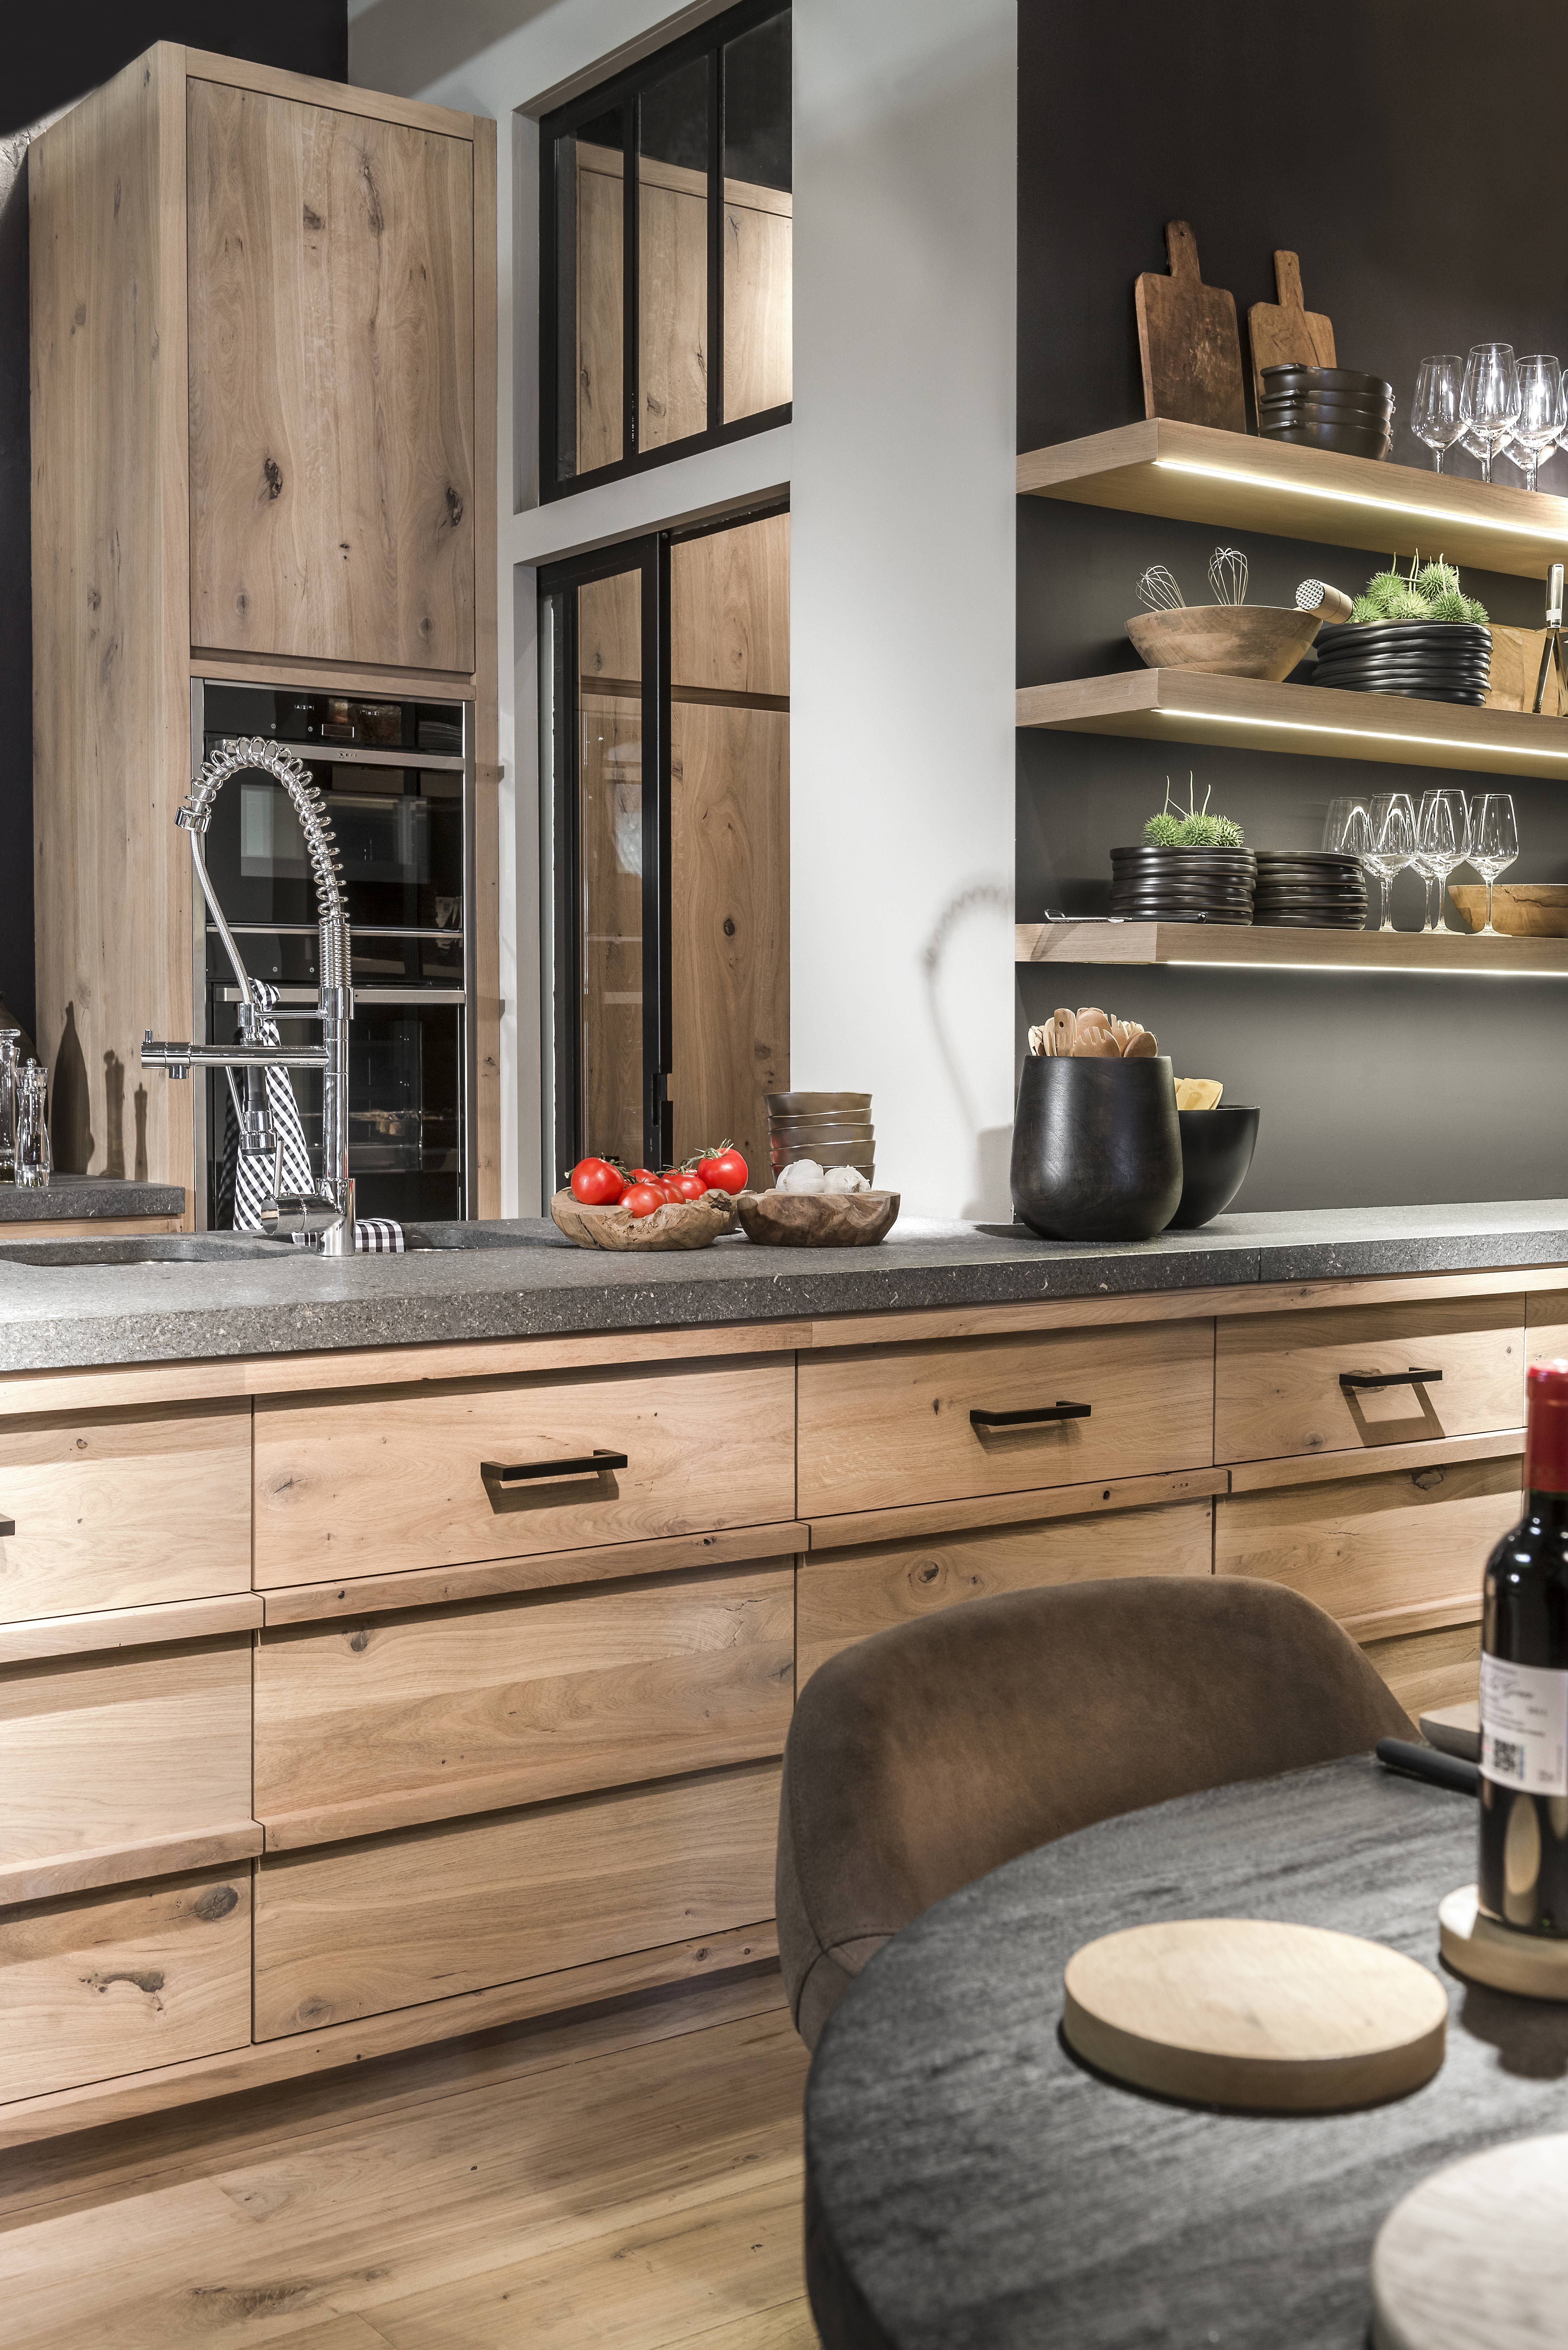 Project Op Maat  Projet Surmesure  Slots Décoration  Interior Simple Timber Kitchen Designs Inspiration